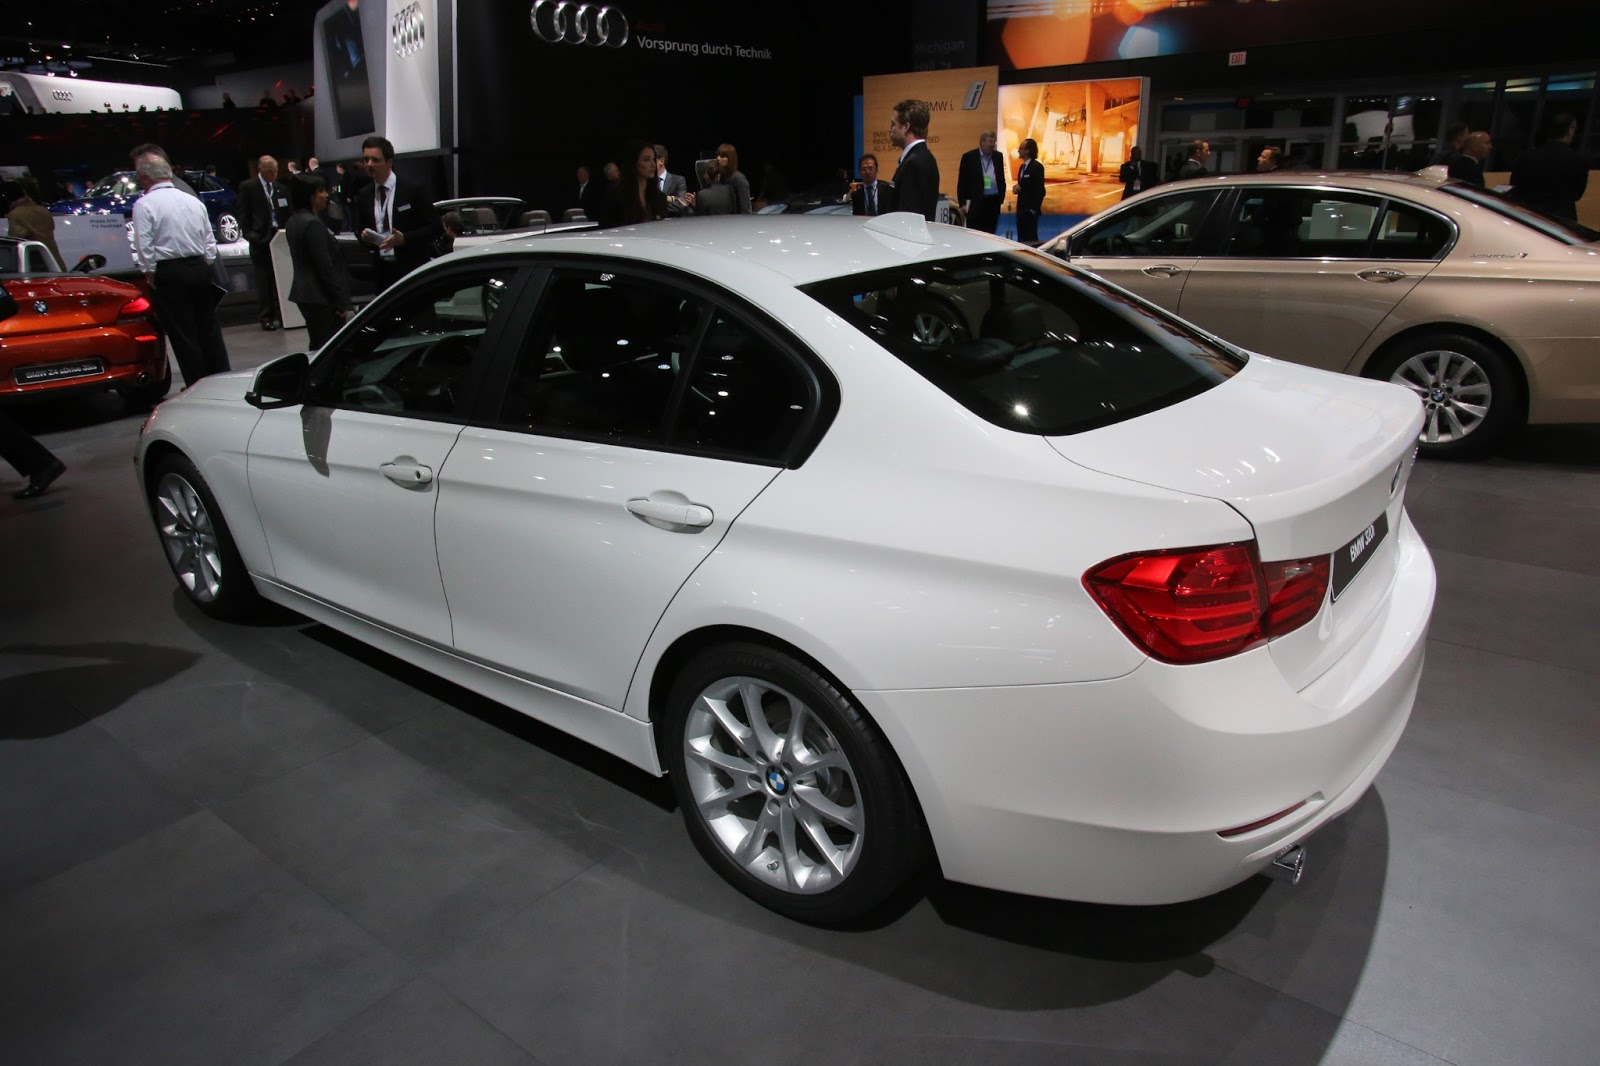 Cars GTO: BMW 320i Detroit 2013